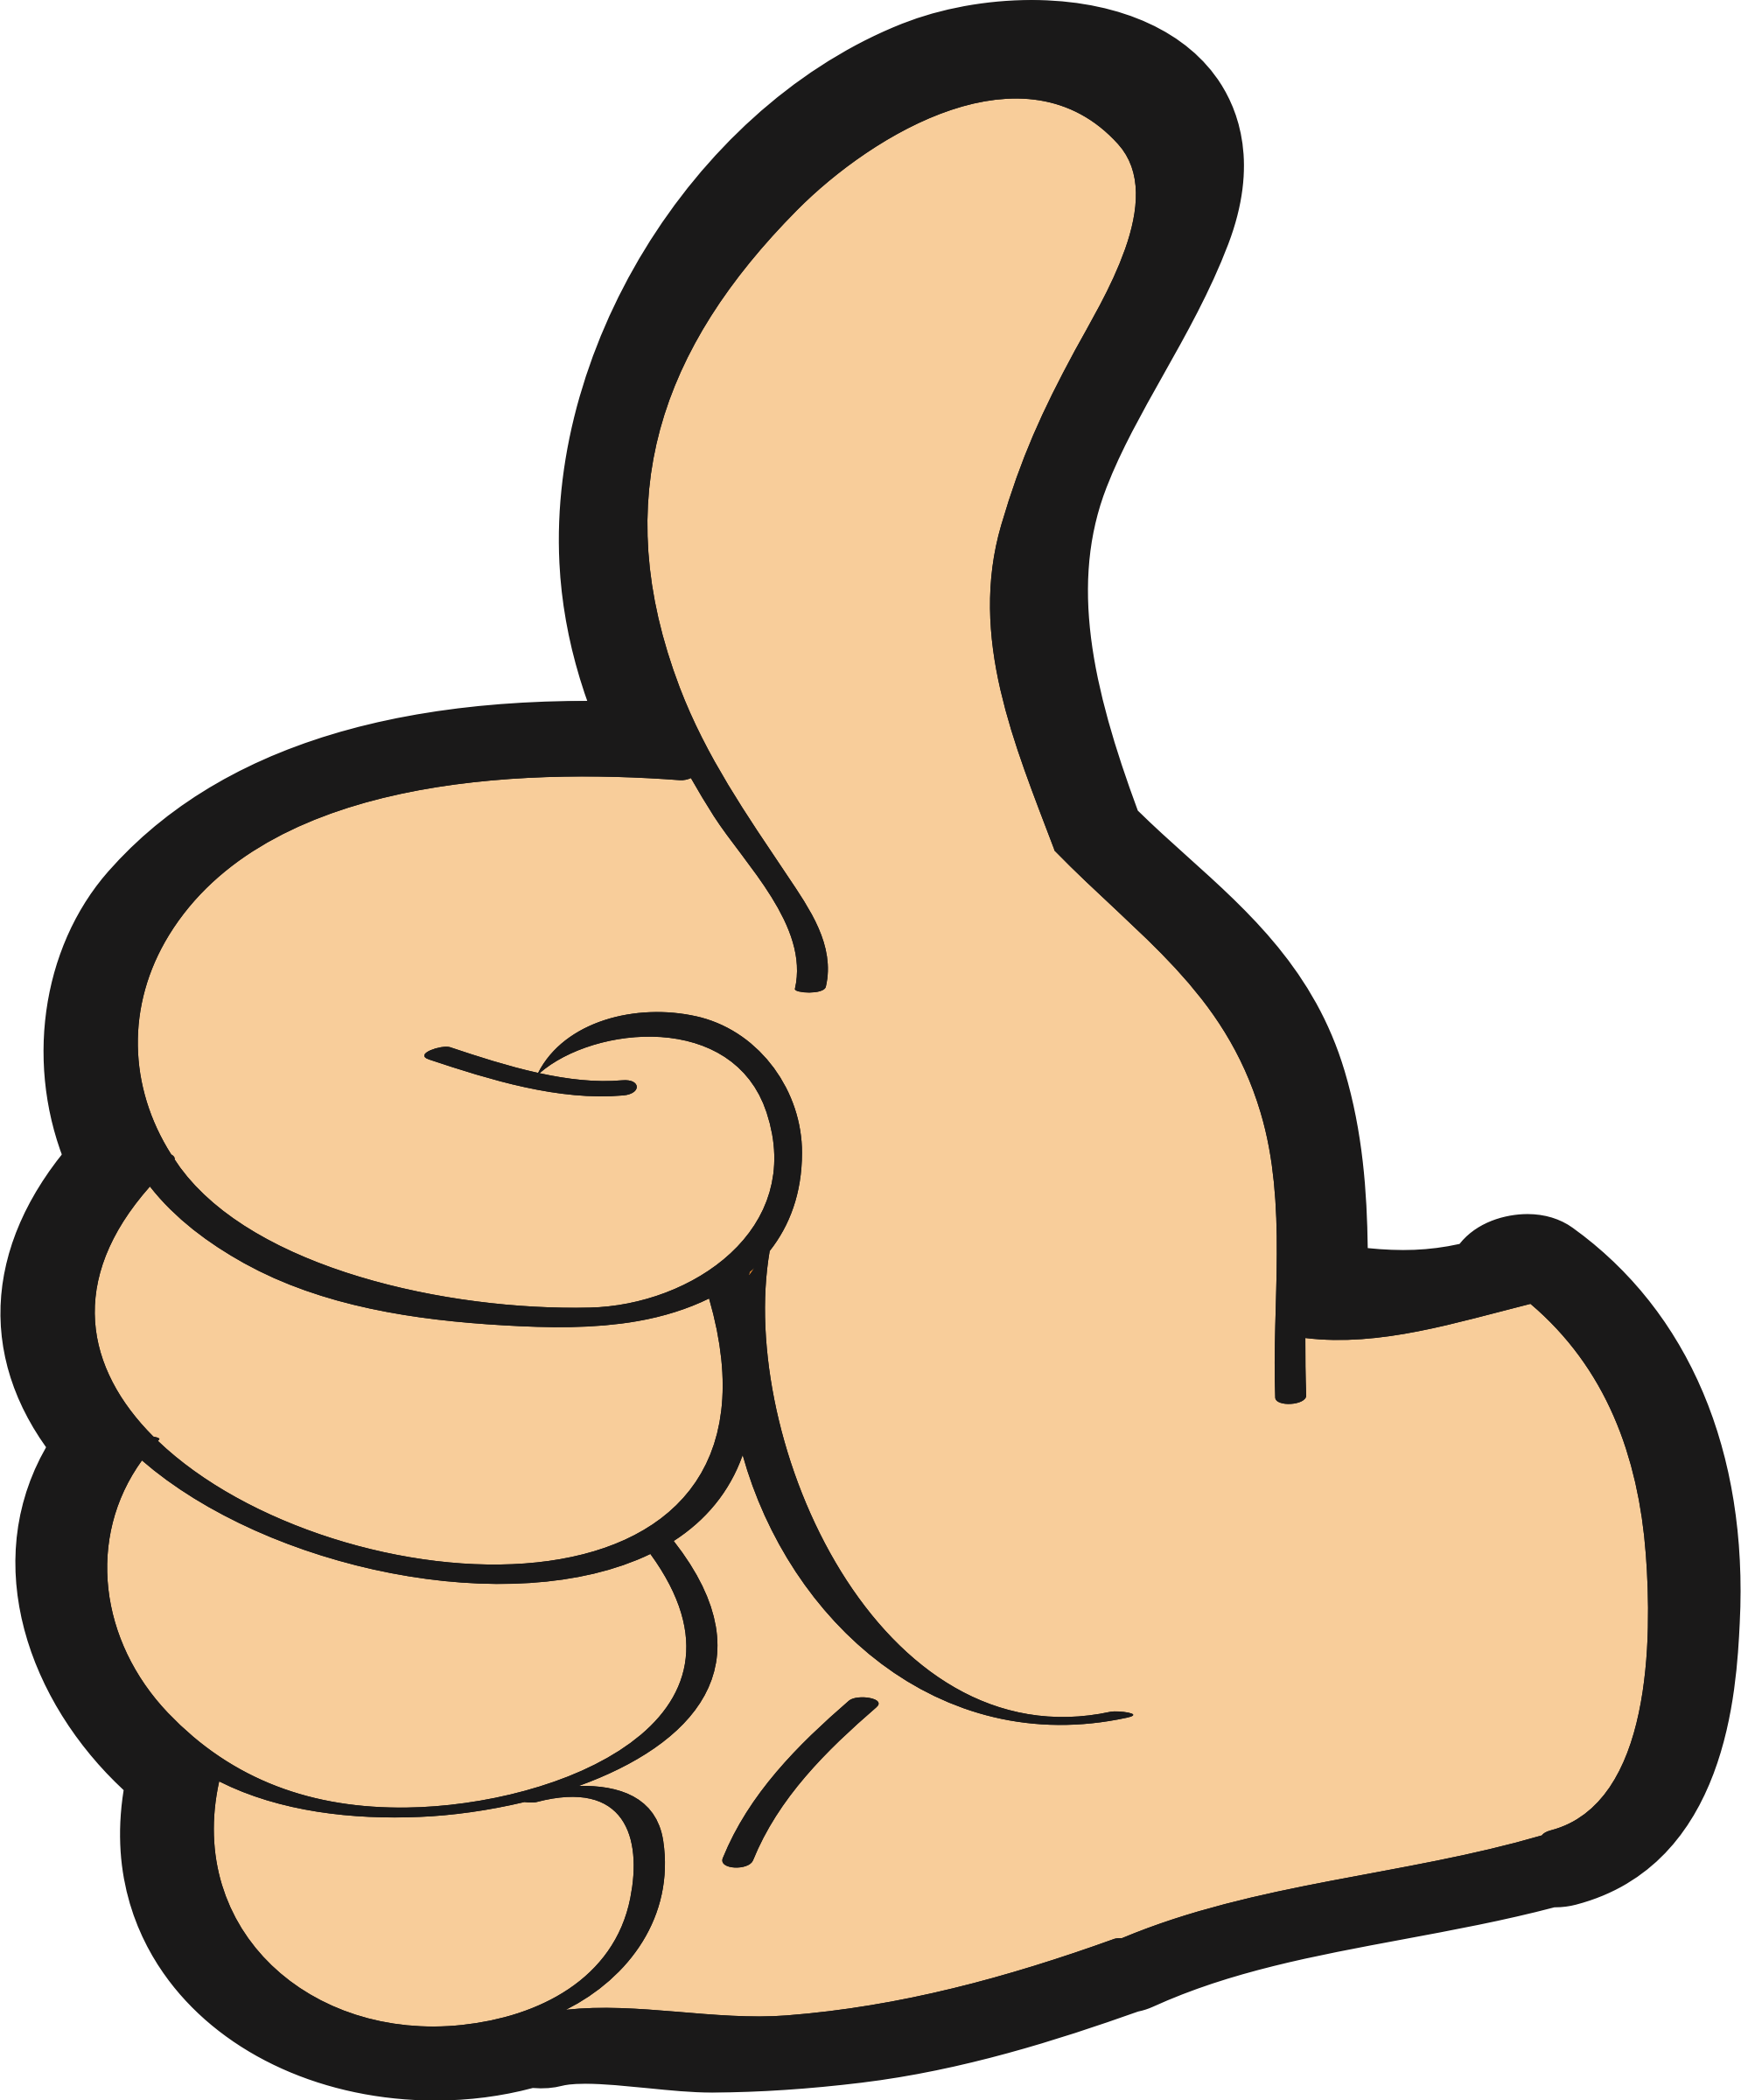 HD Thumbs Up Clipart Transparent Transparent Background.